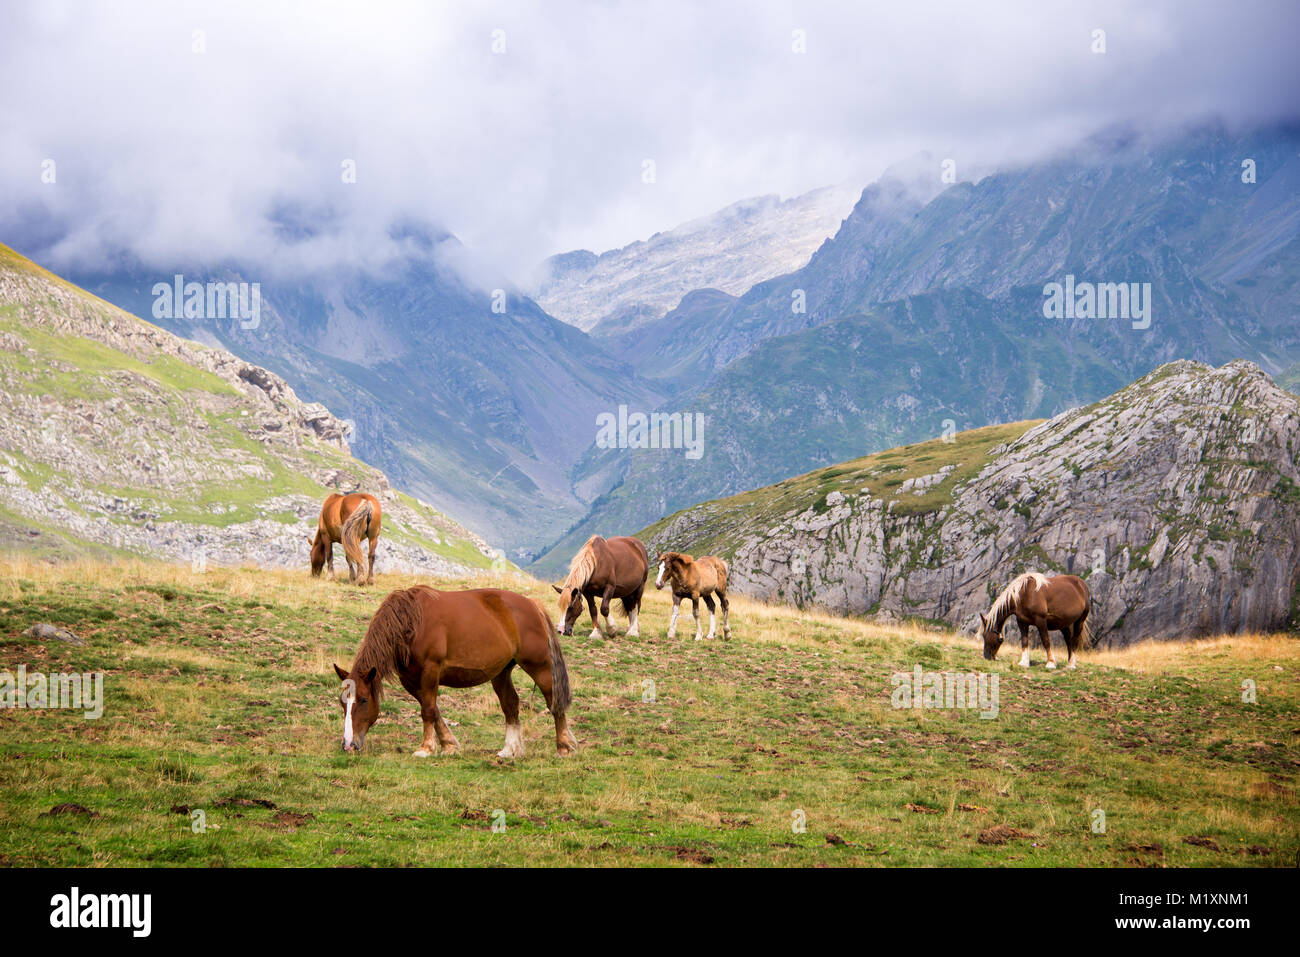 Herd of horses grazing near Pourtalet pass, Ossau valley in the Pyrenees, France Stock Photo